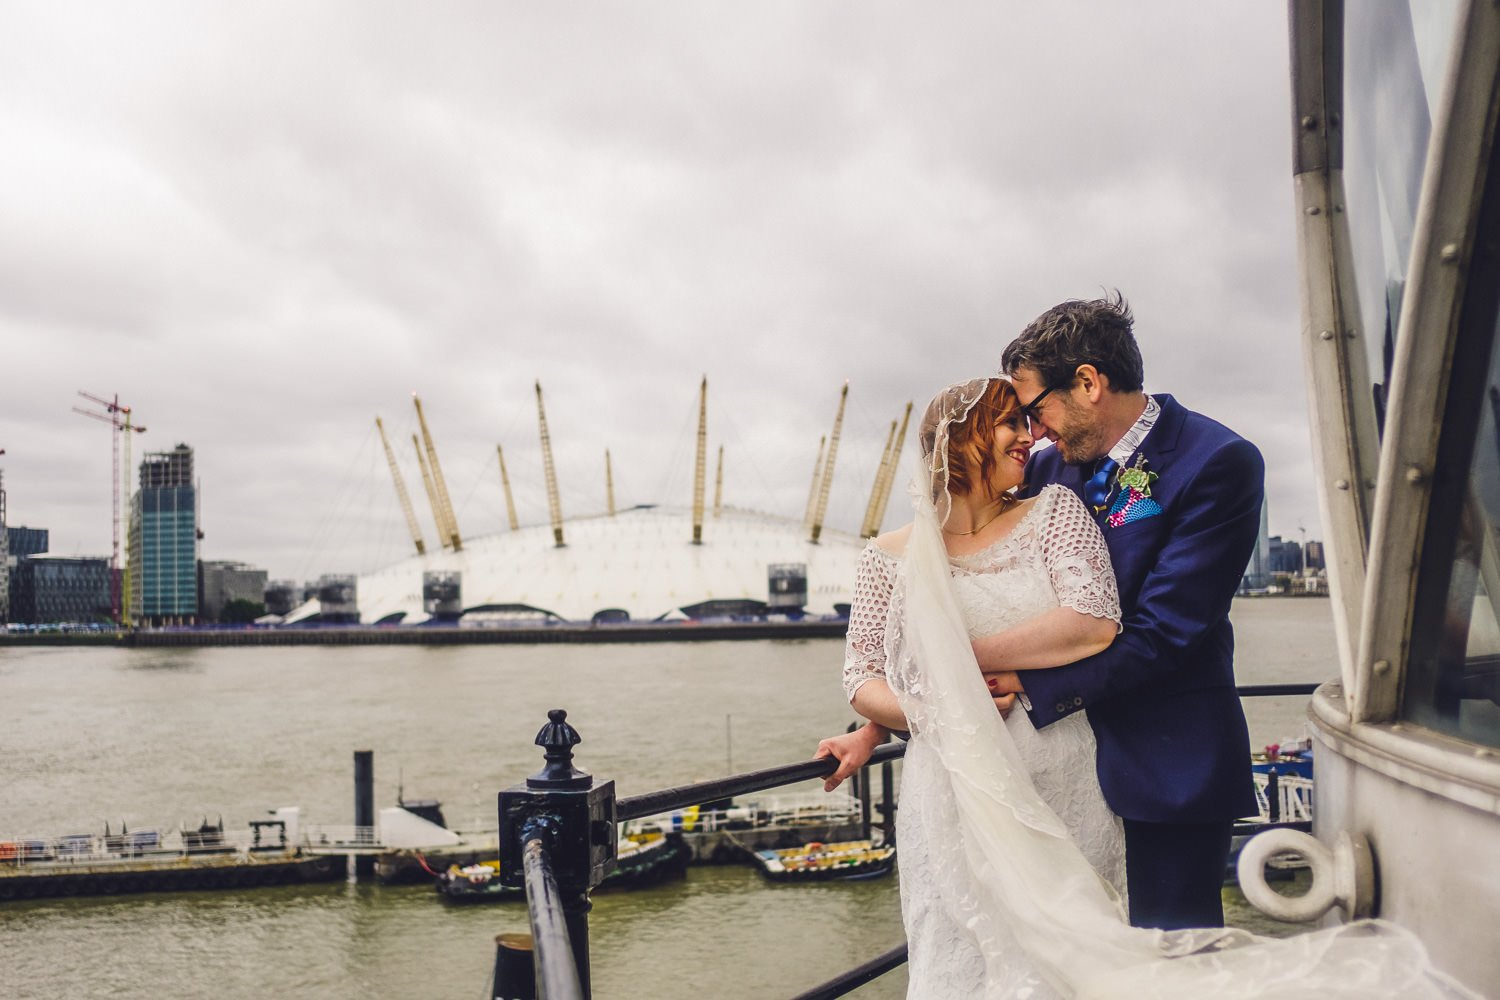 London wedding photographer Babb Photo